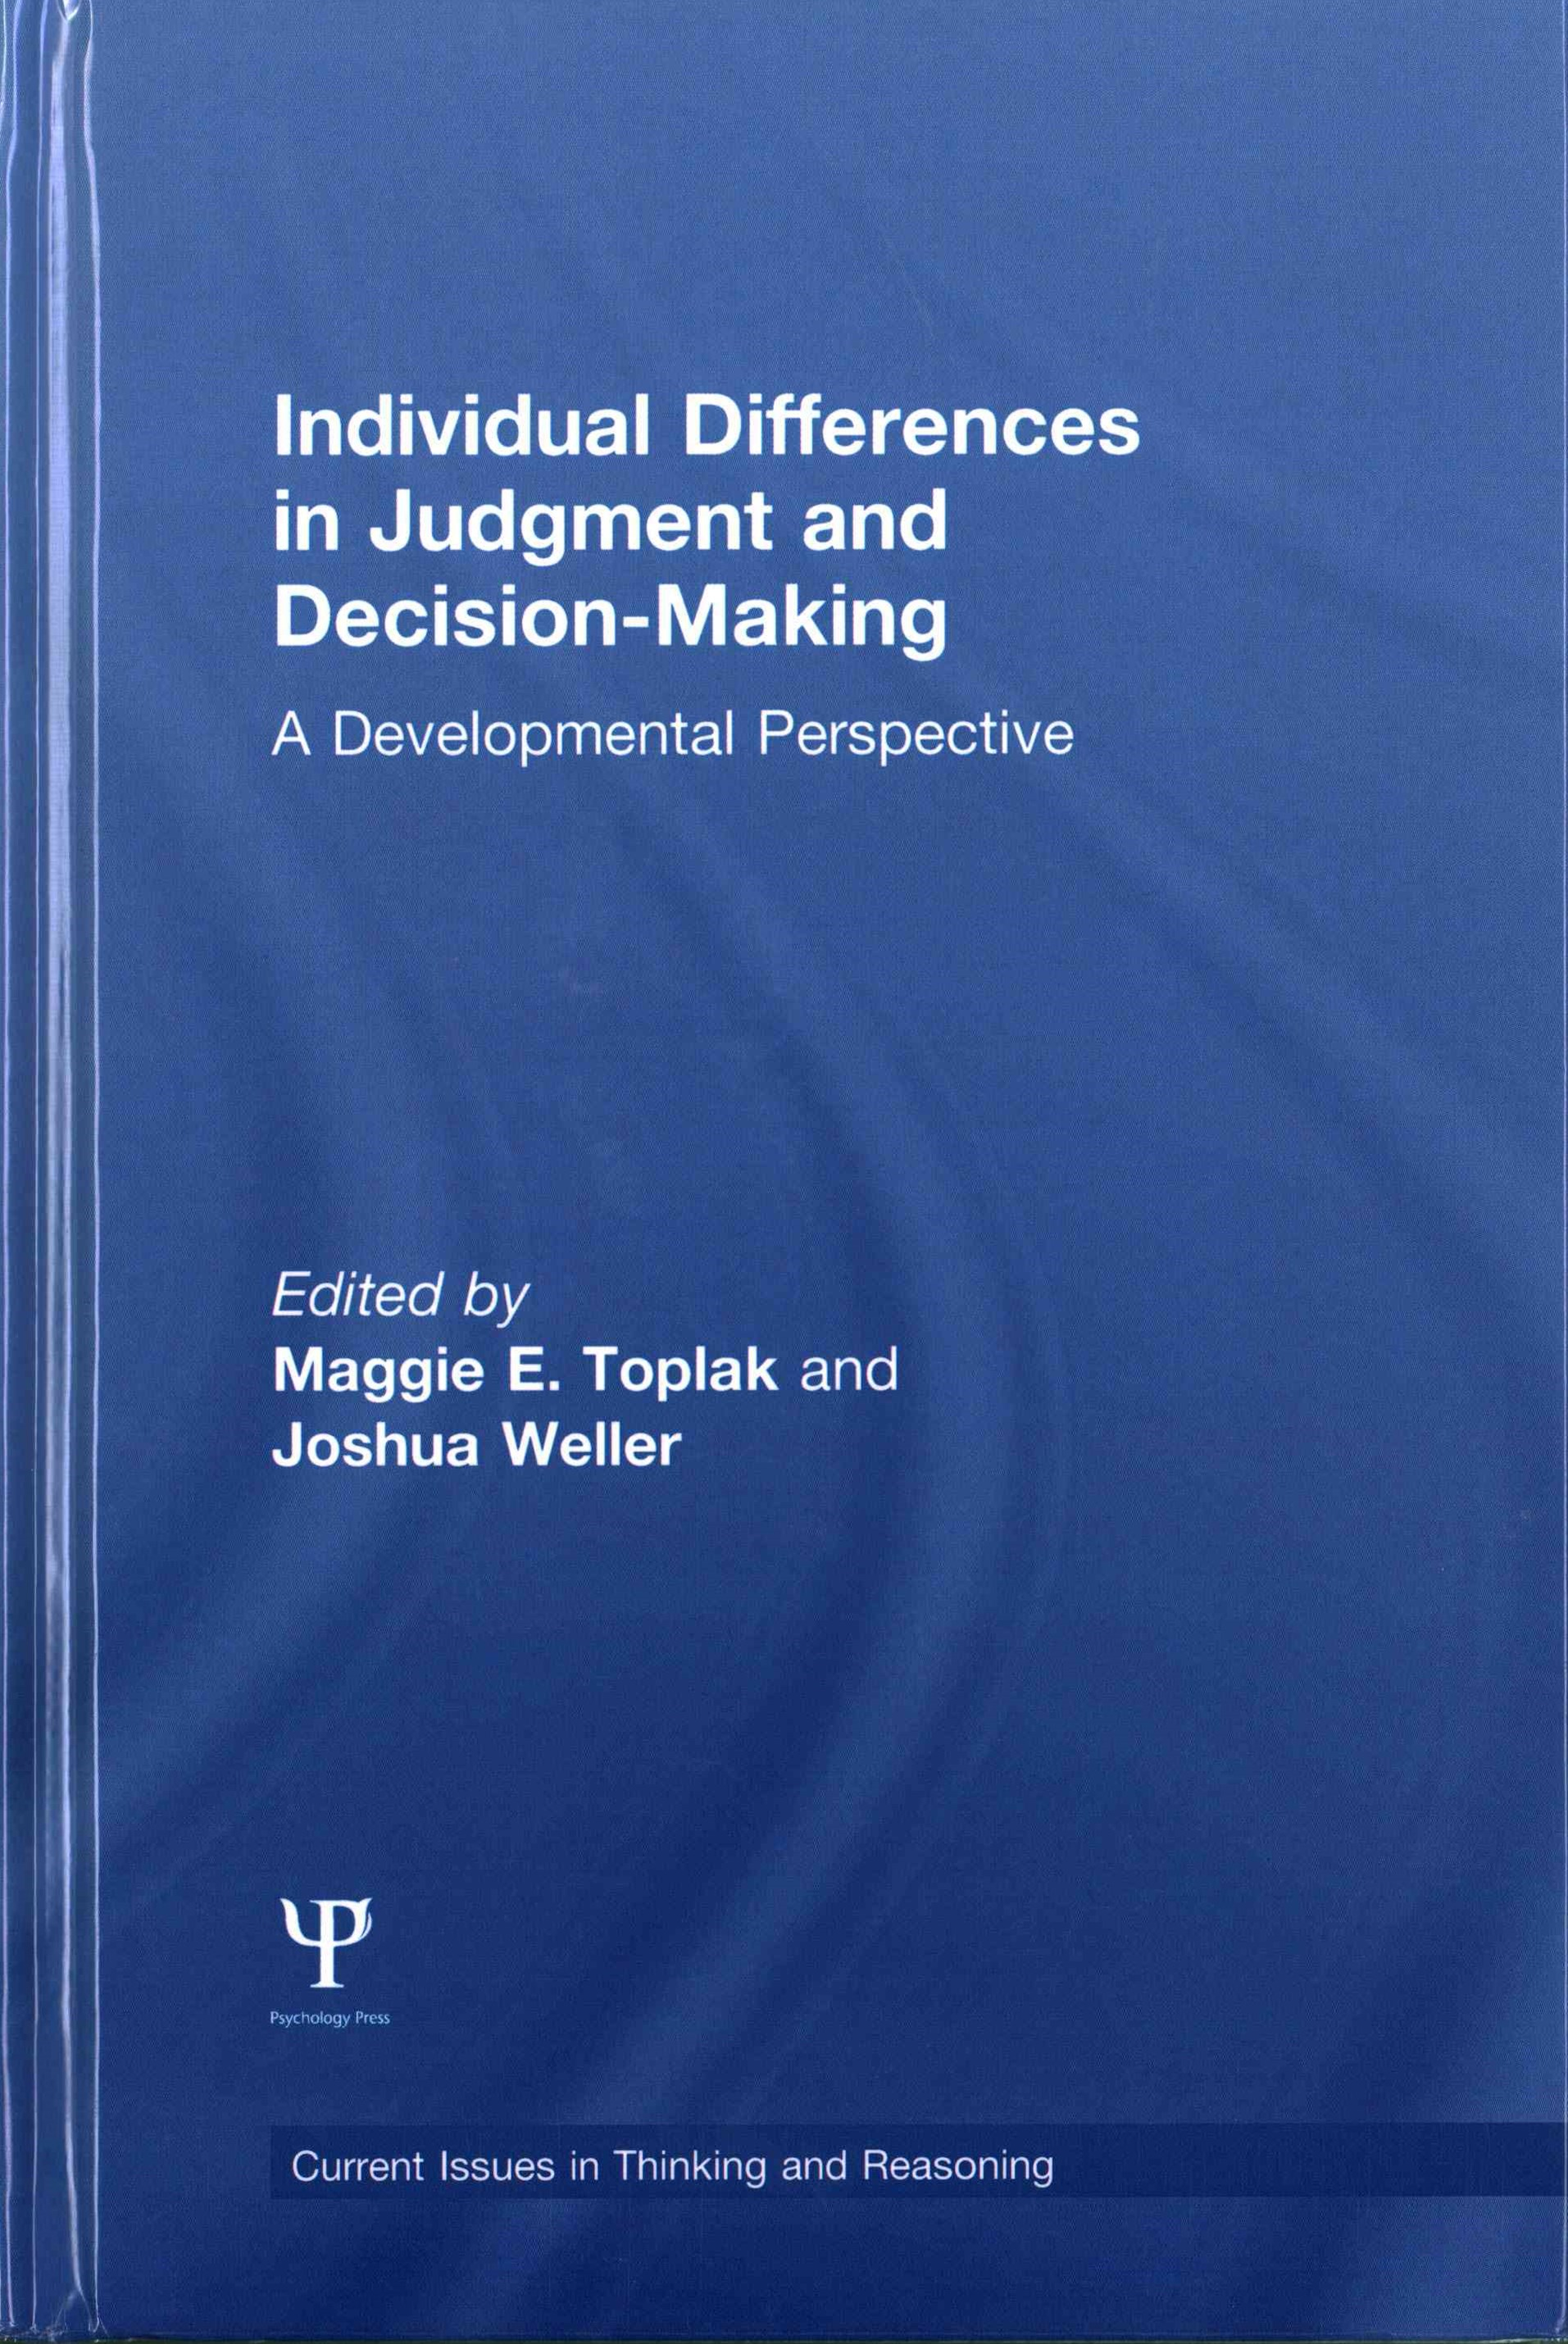 Individual Differences in Judgement and Decision-Making